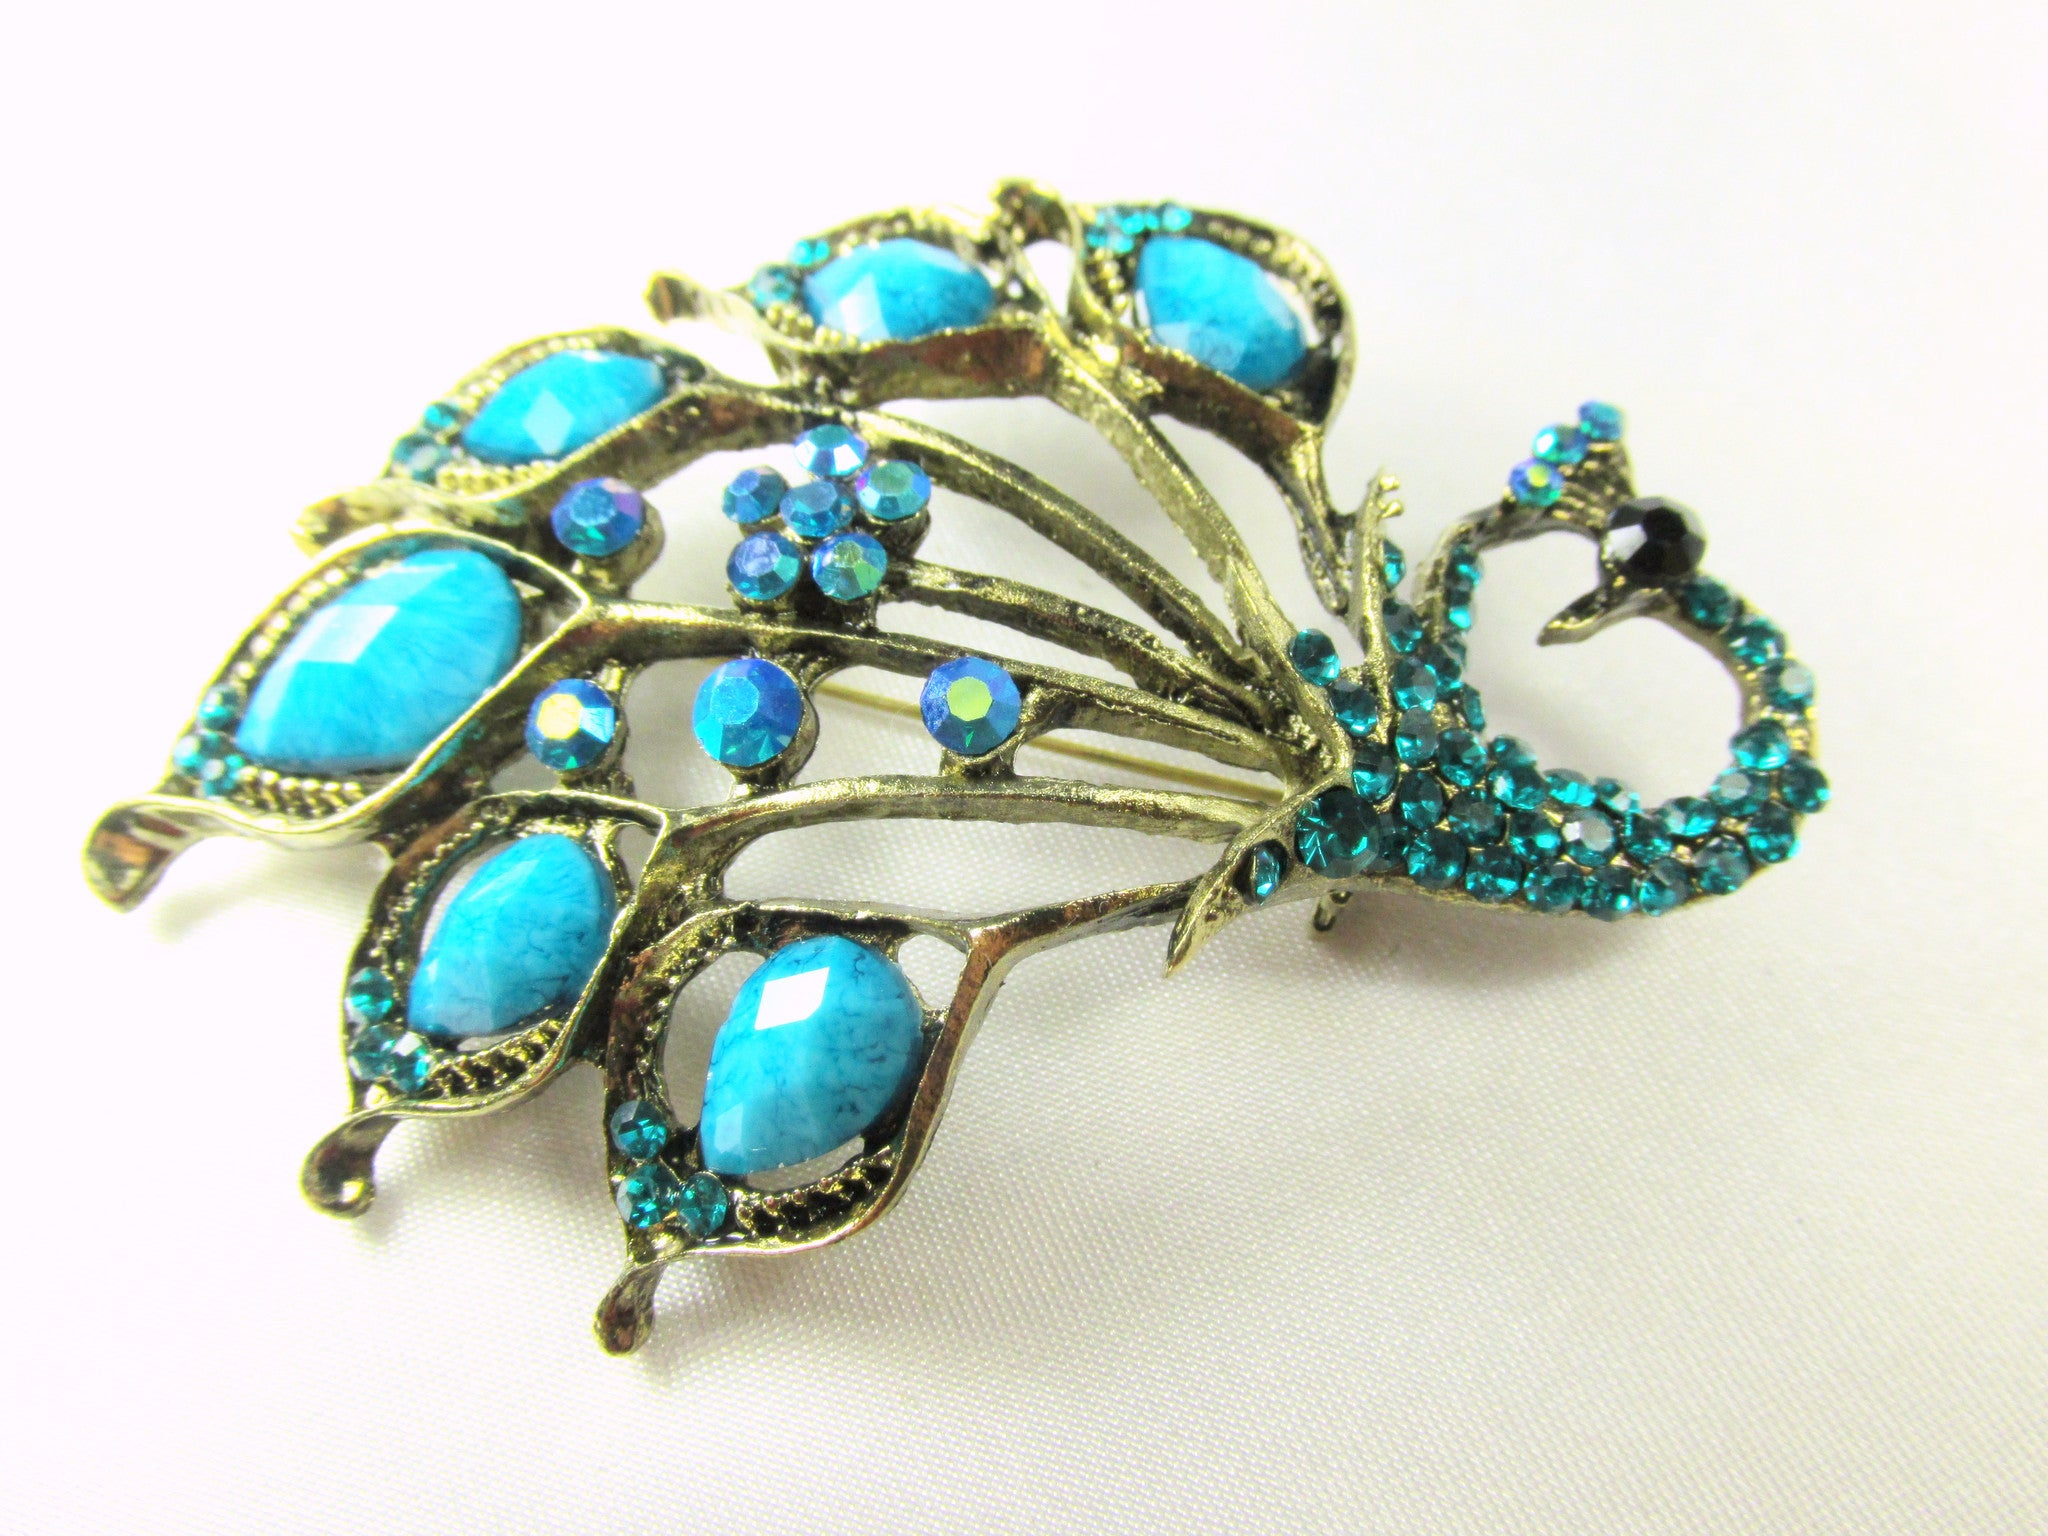 Turquoise Peacock Brooch in Antique Gold - Odyssey Creations